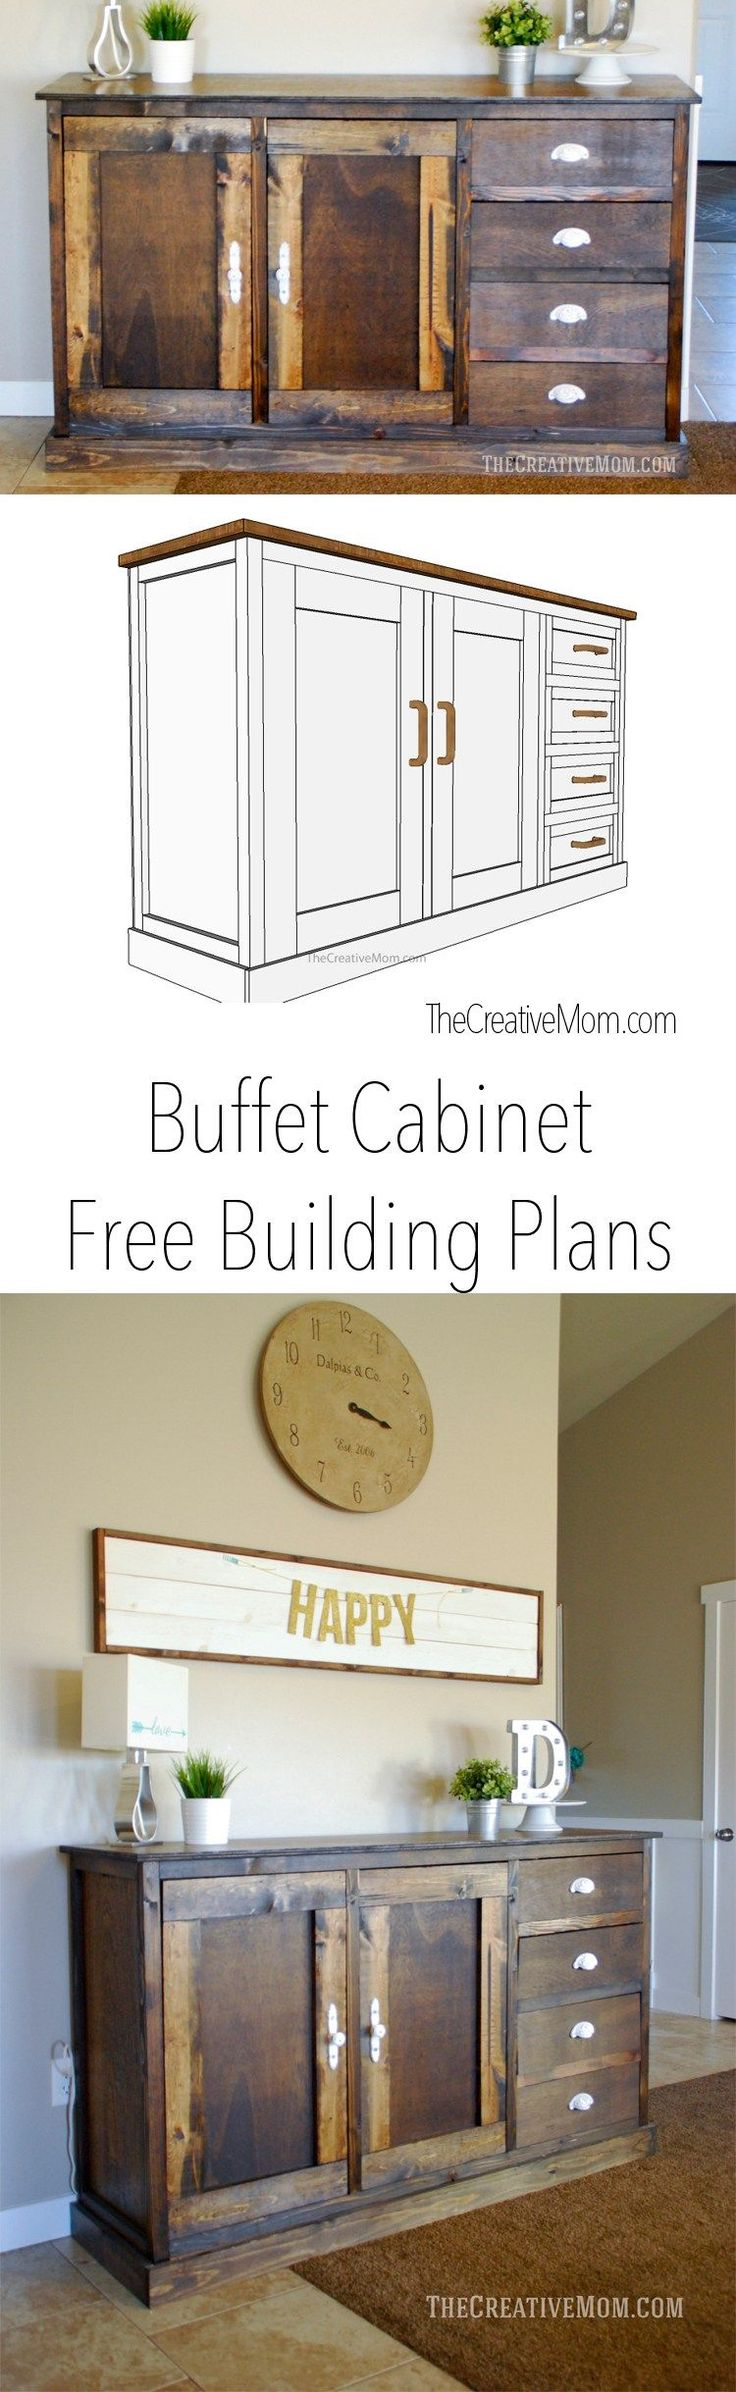 In addition long buffet cabi on 2015 dining room furniture styles - Diy Buffet Cabinet Free Building Plans Via The Creative Mom